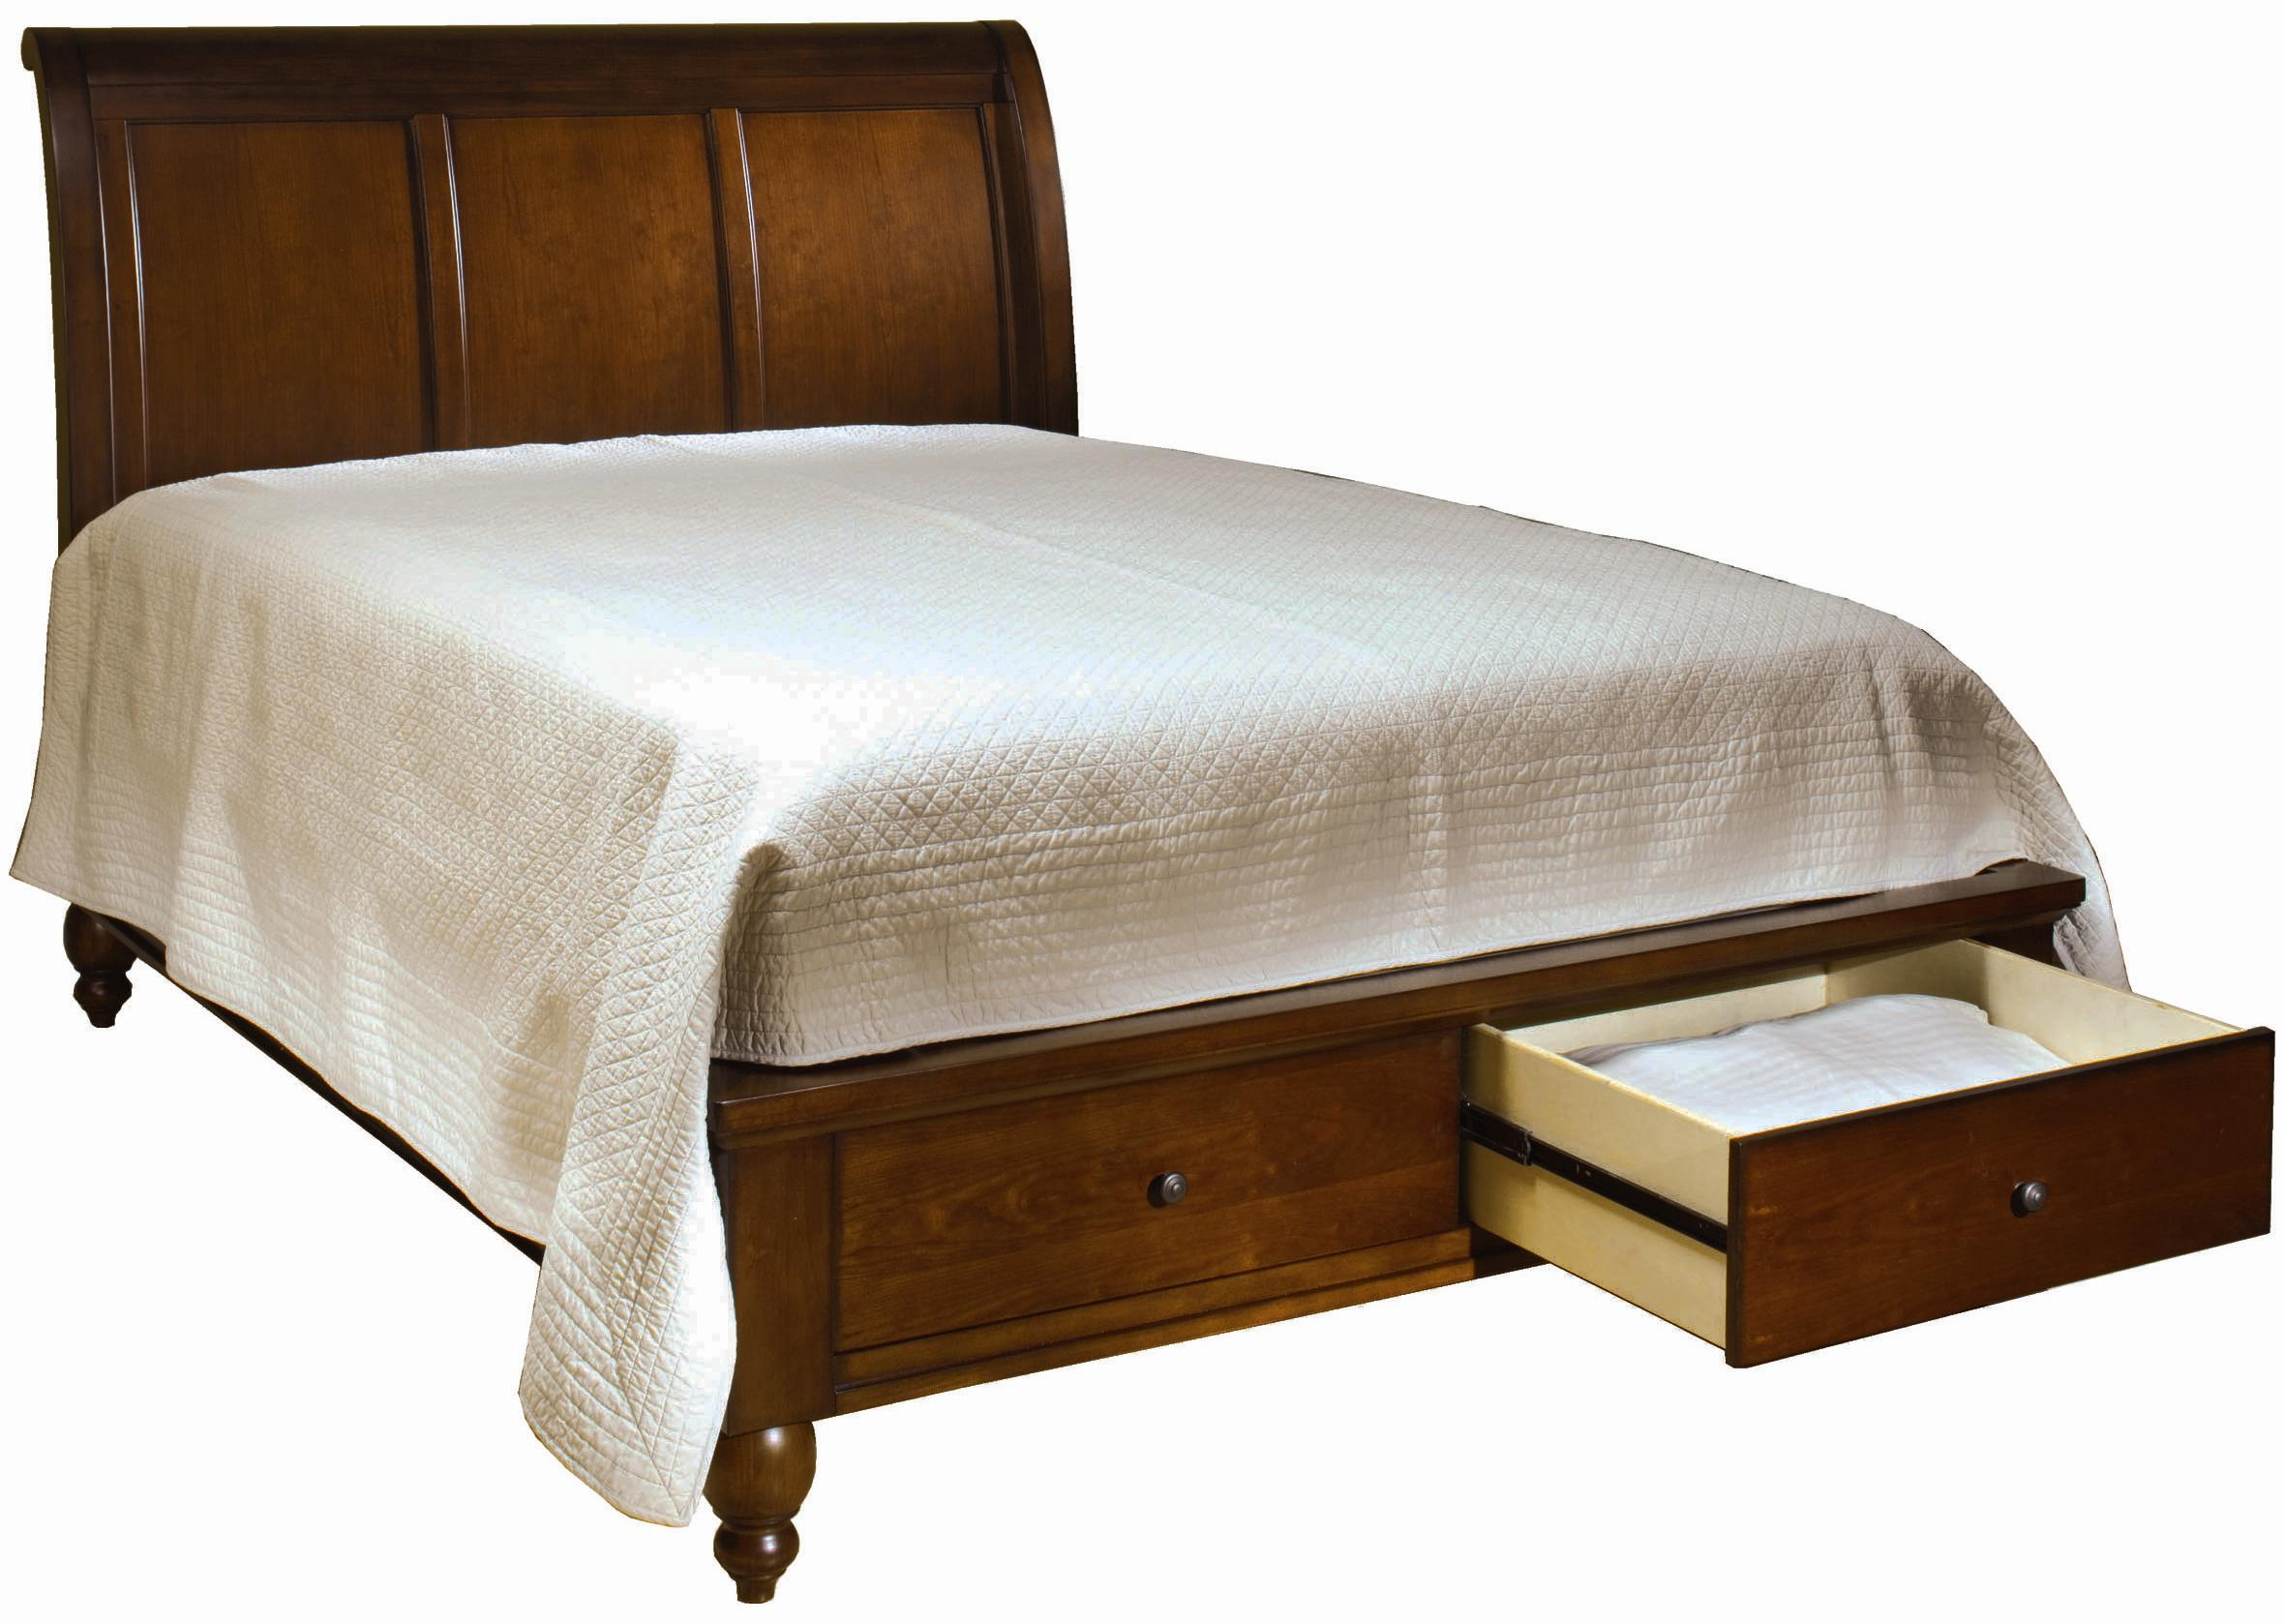 Sleigh Bed Headboard King Size Bed With Sleigh Headboard Drawer Storage Footboard By